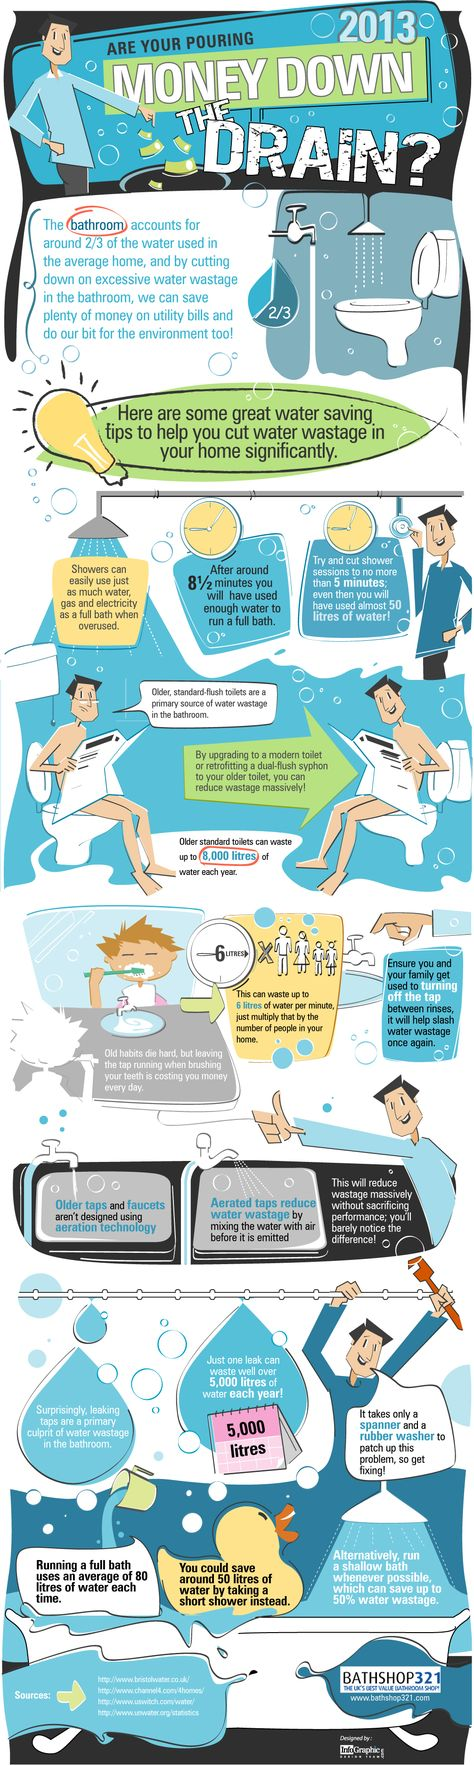 Save Water In The Bathroom With Images Water Saving Tips